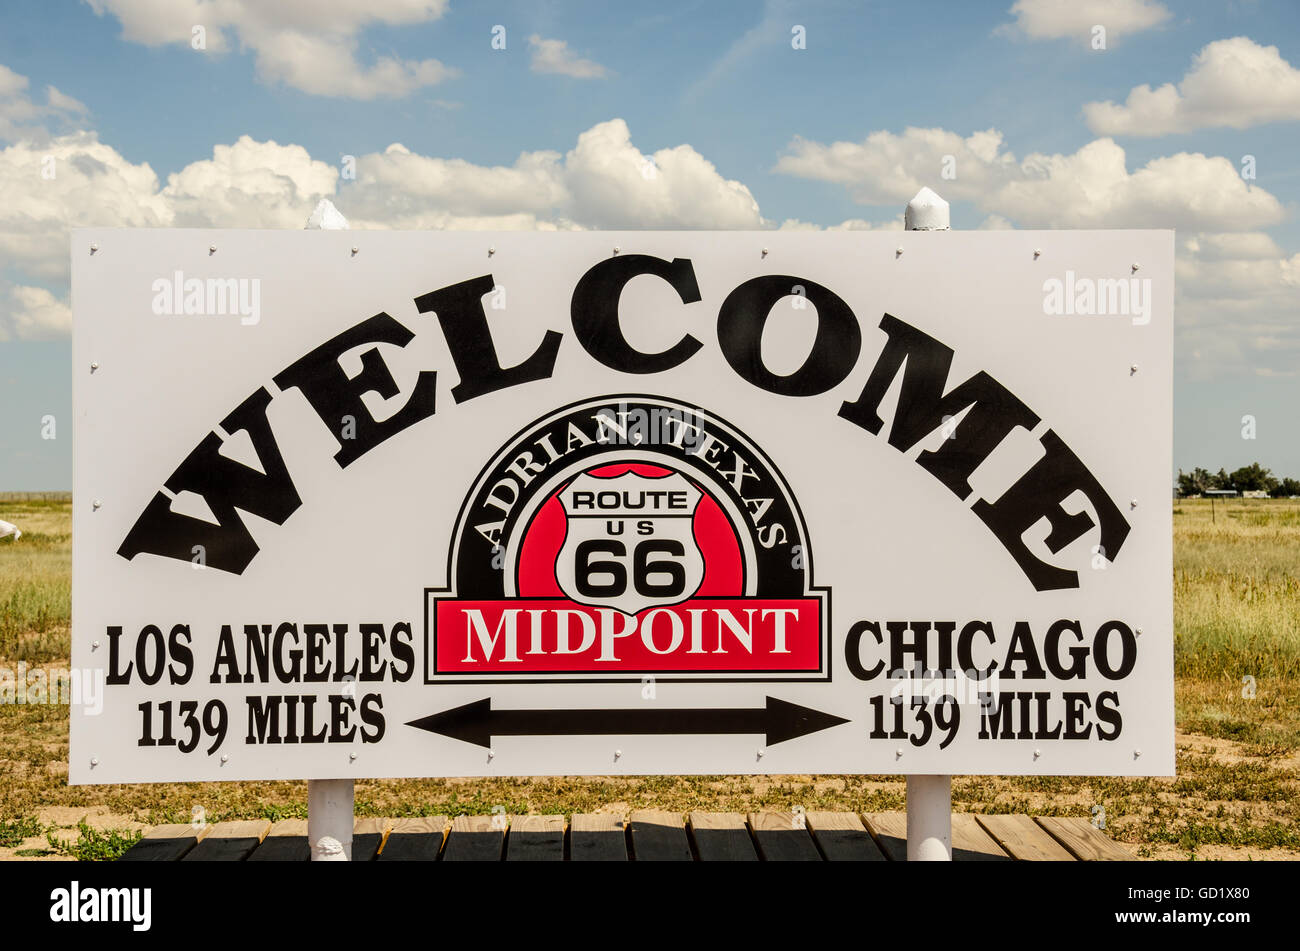 Adrian, Texas, is the halfway point for travelers on Route 66. Chicago and Los Angeles are each 1139 miles from - Stock Image